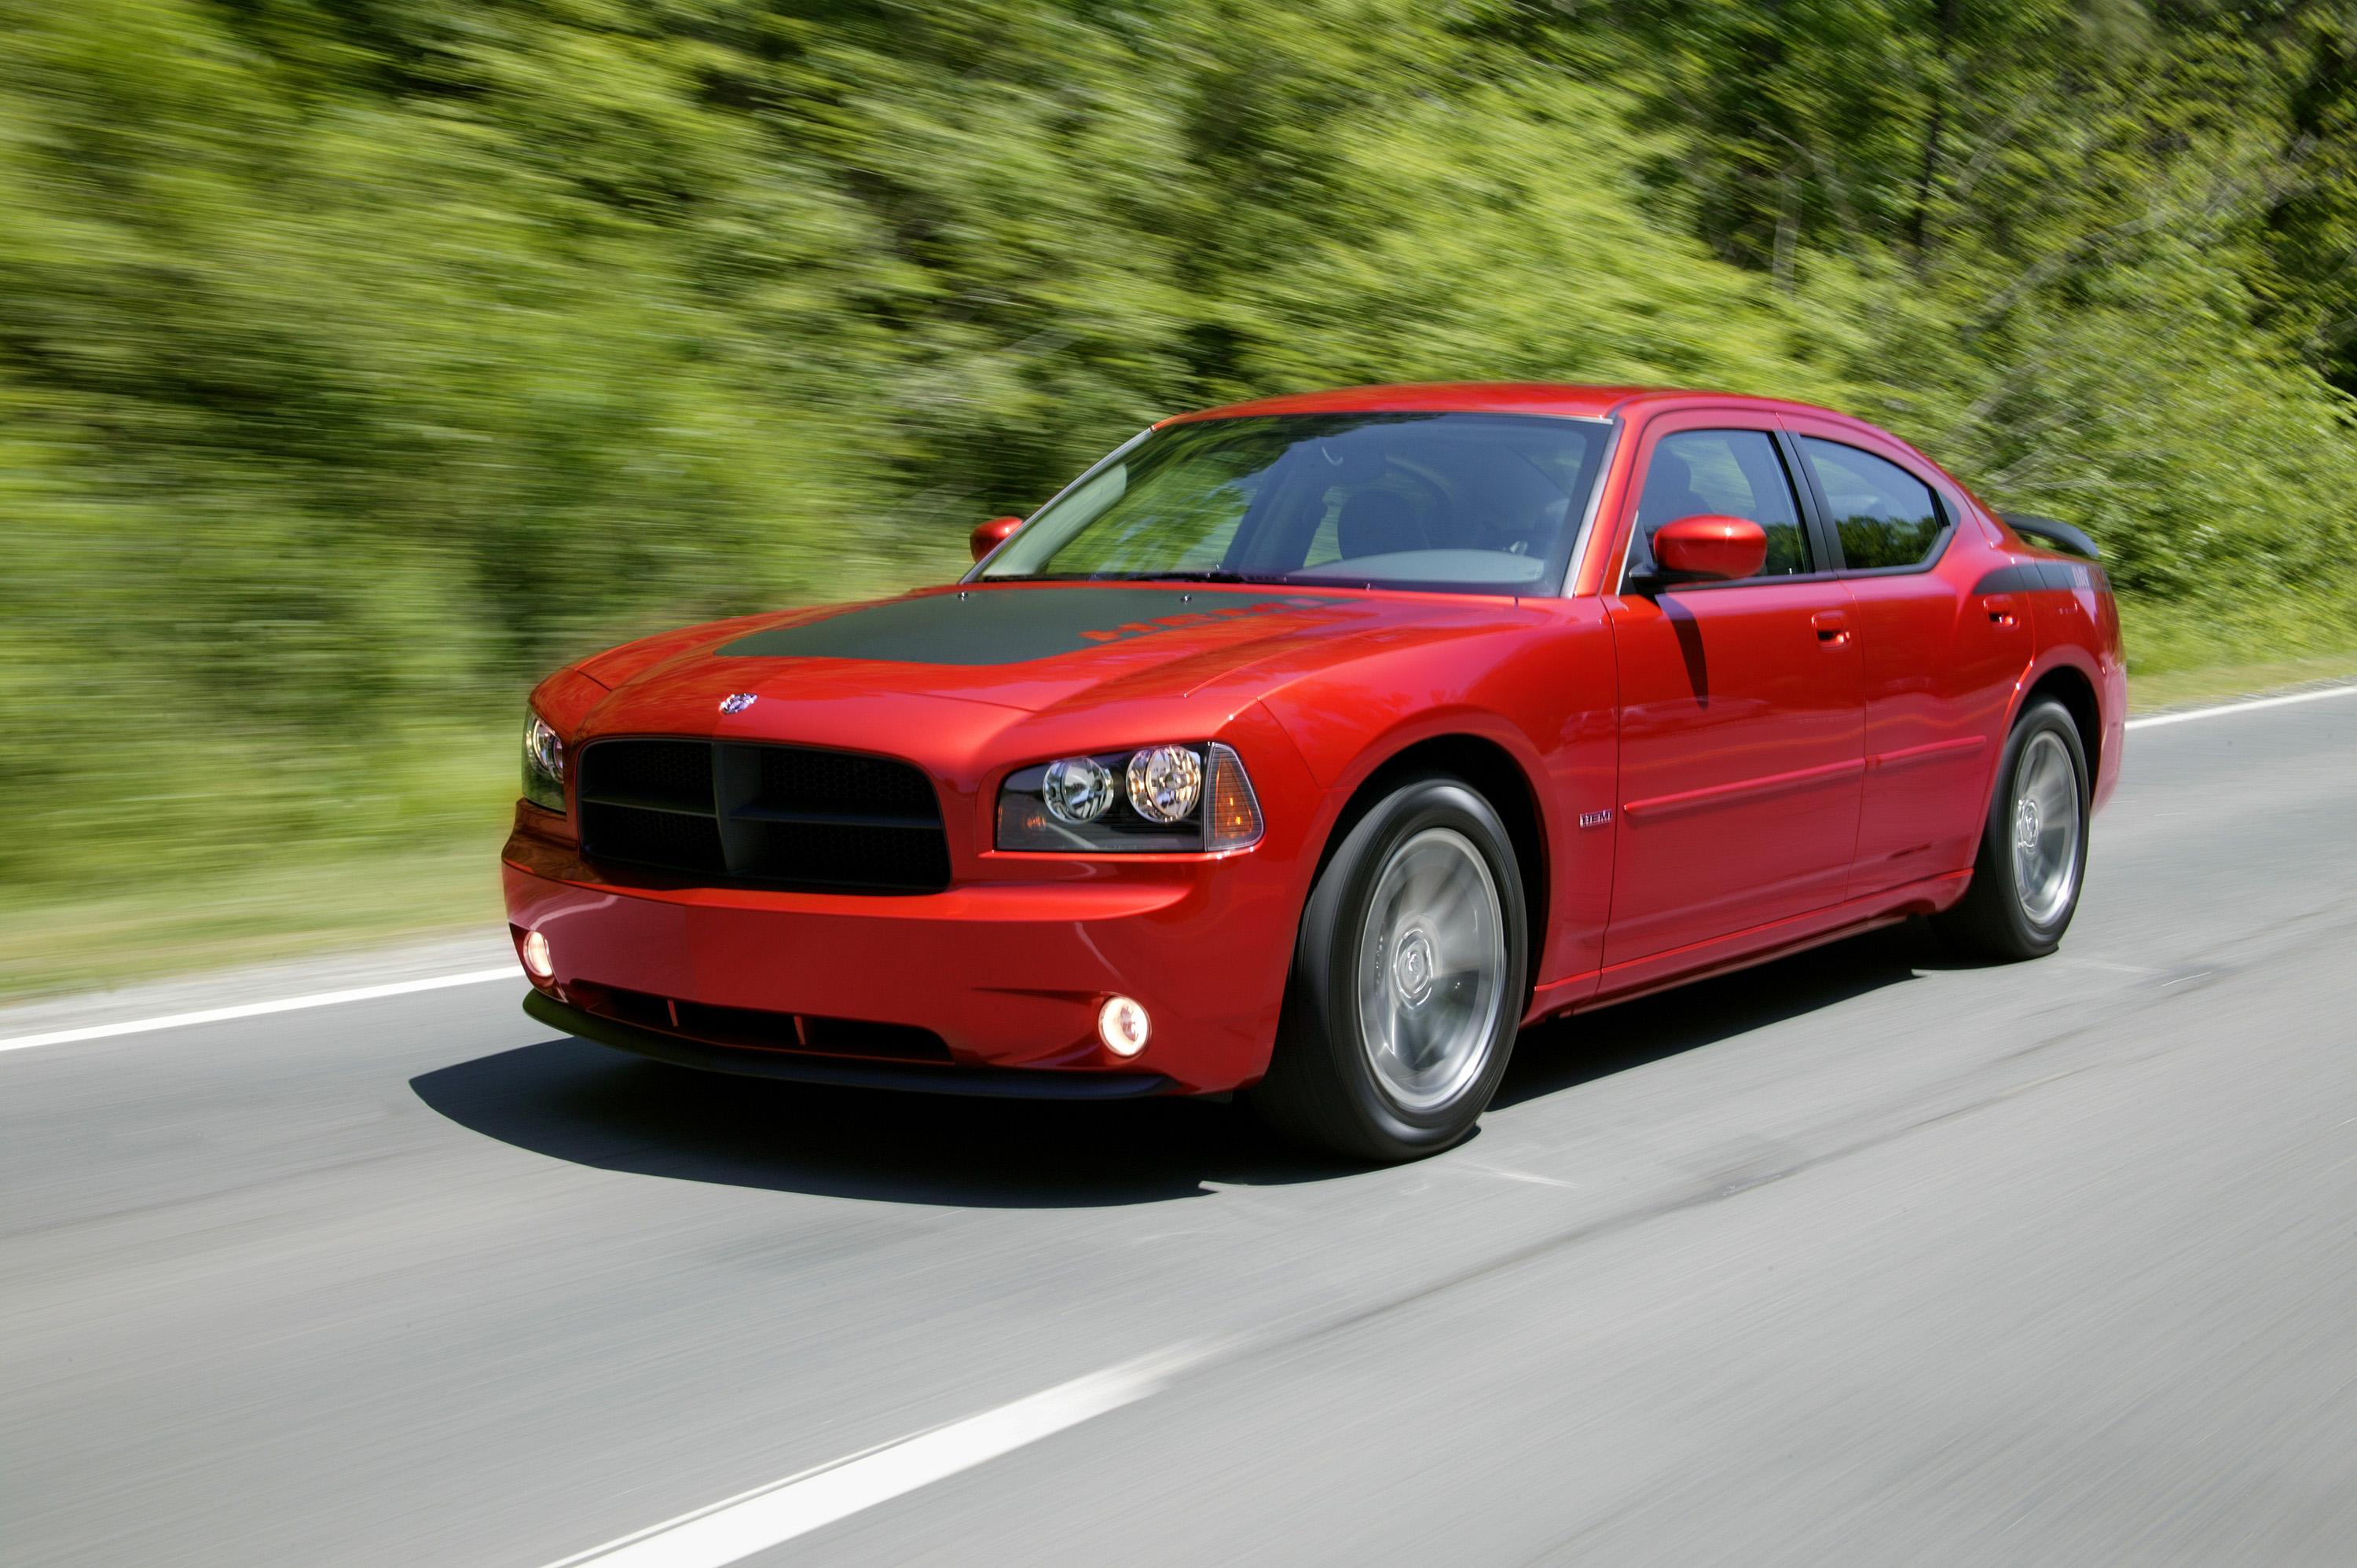 2007 Dodge Charger | Top Speed